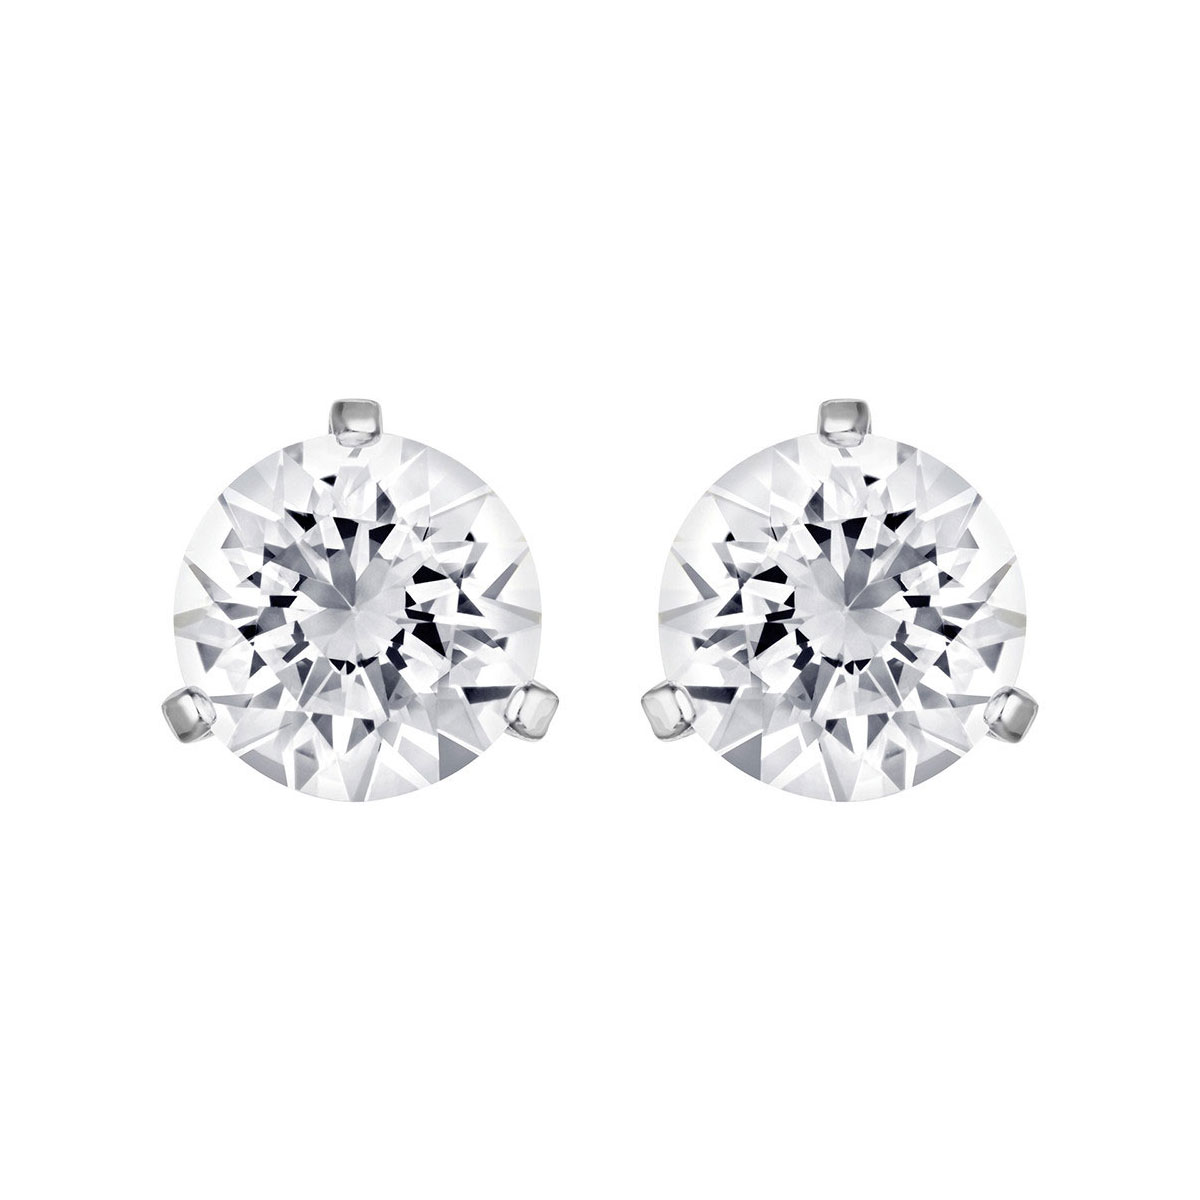 Swarovski Solitaire Pierced Earrings, White, Rhodium